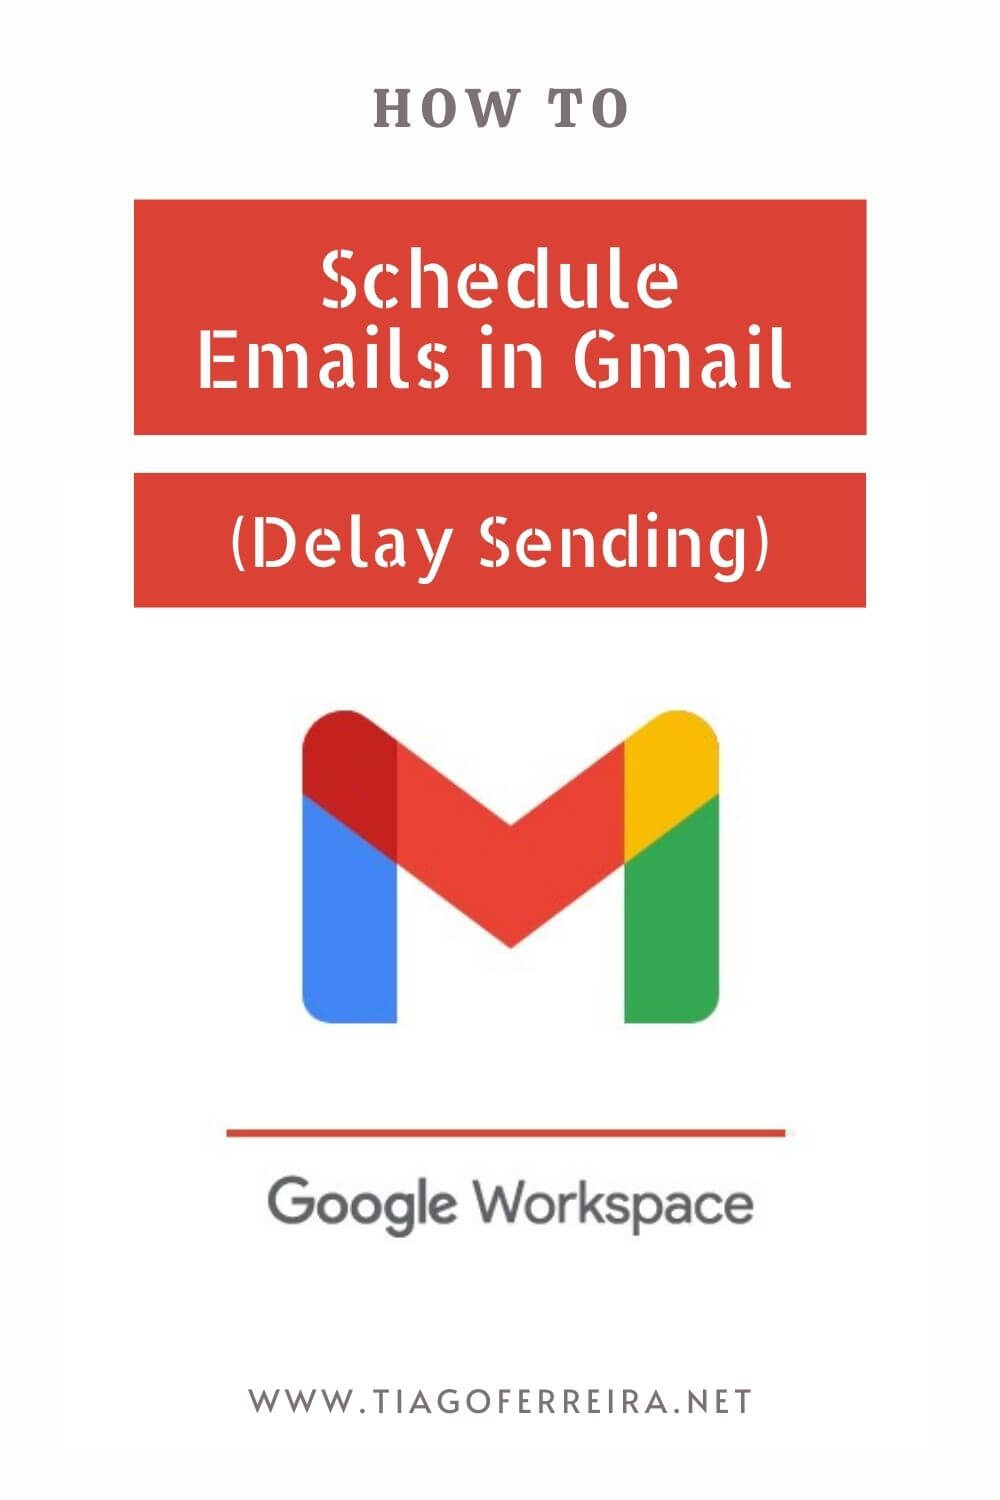 How to Schedule Emails in Gmail (Delay Sending)